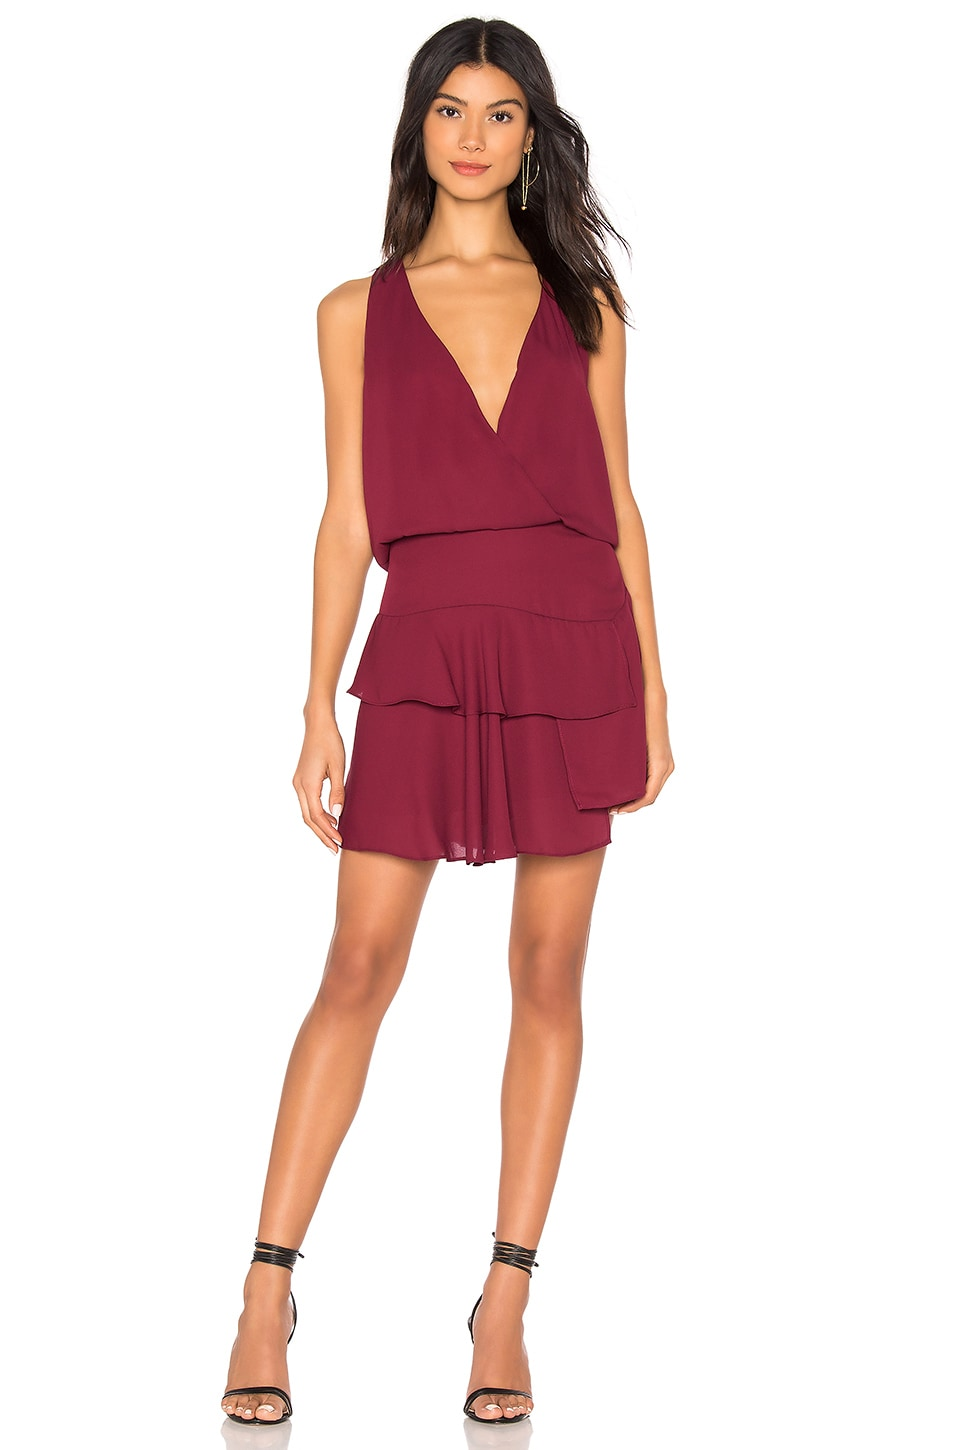 KRISA Layered Skirt Mini Dress in Burgundy